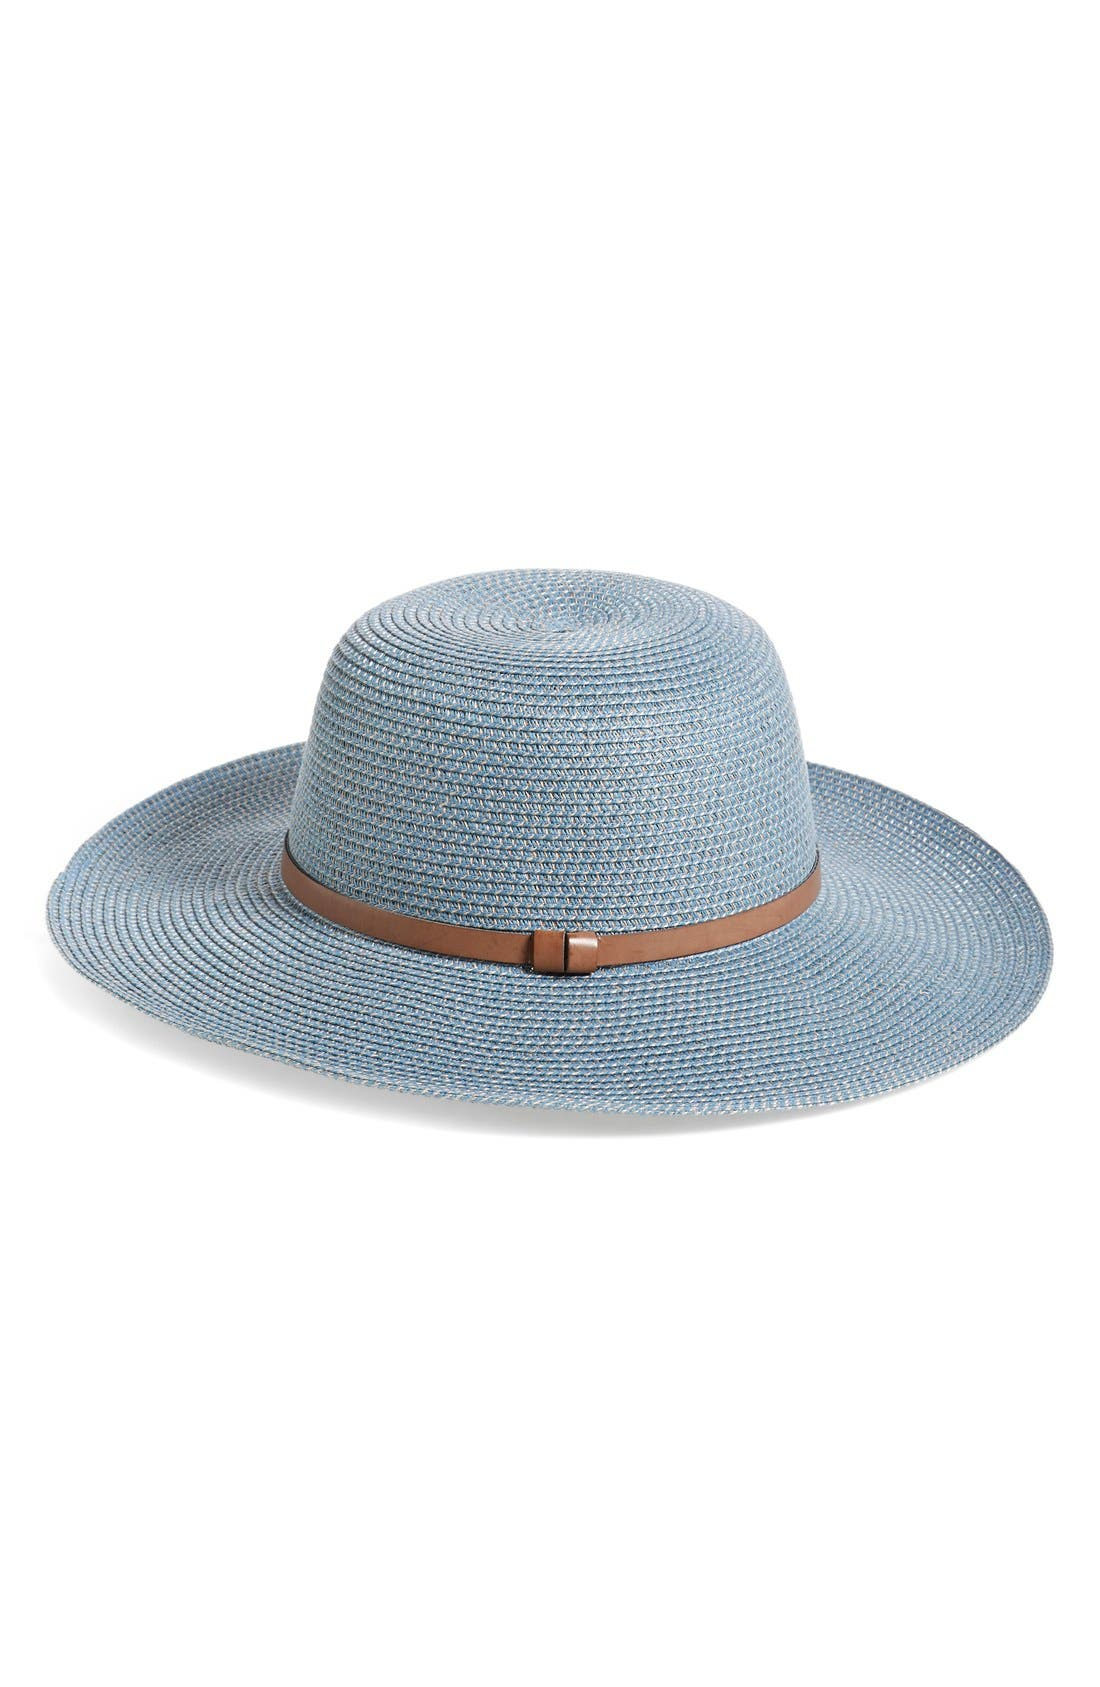 Alternate Image 1 Selected - Nordstrom Straw Floppy Hat